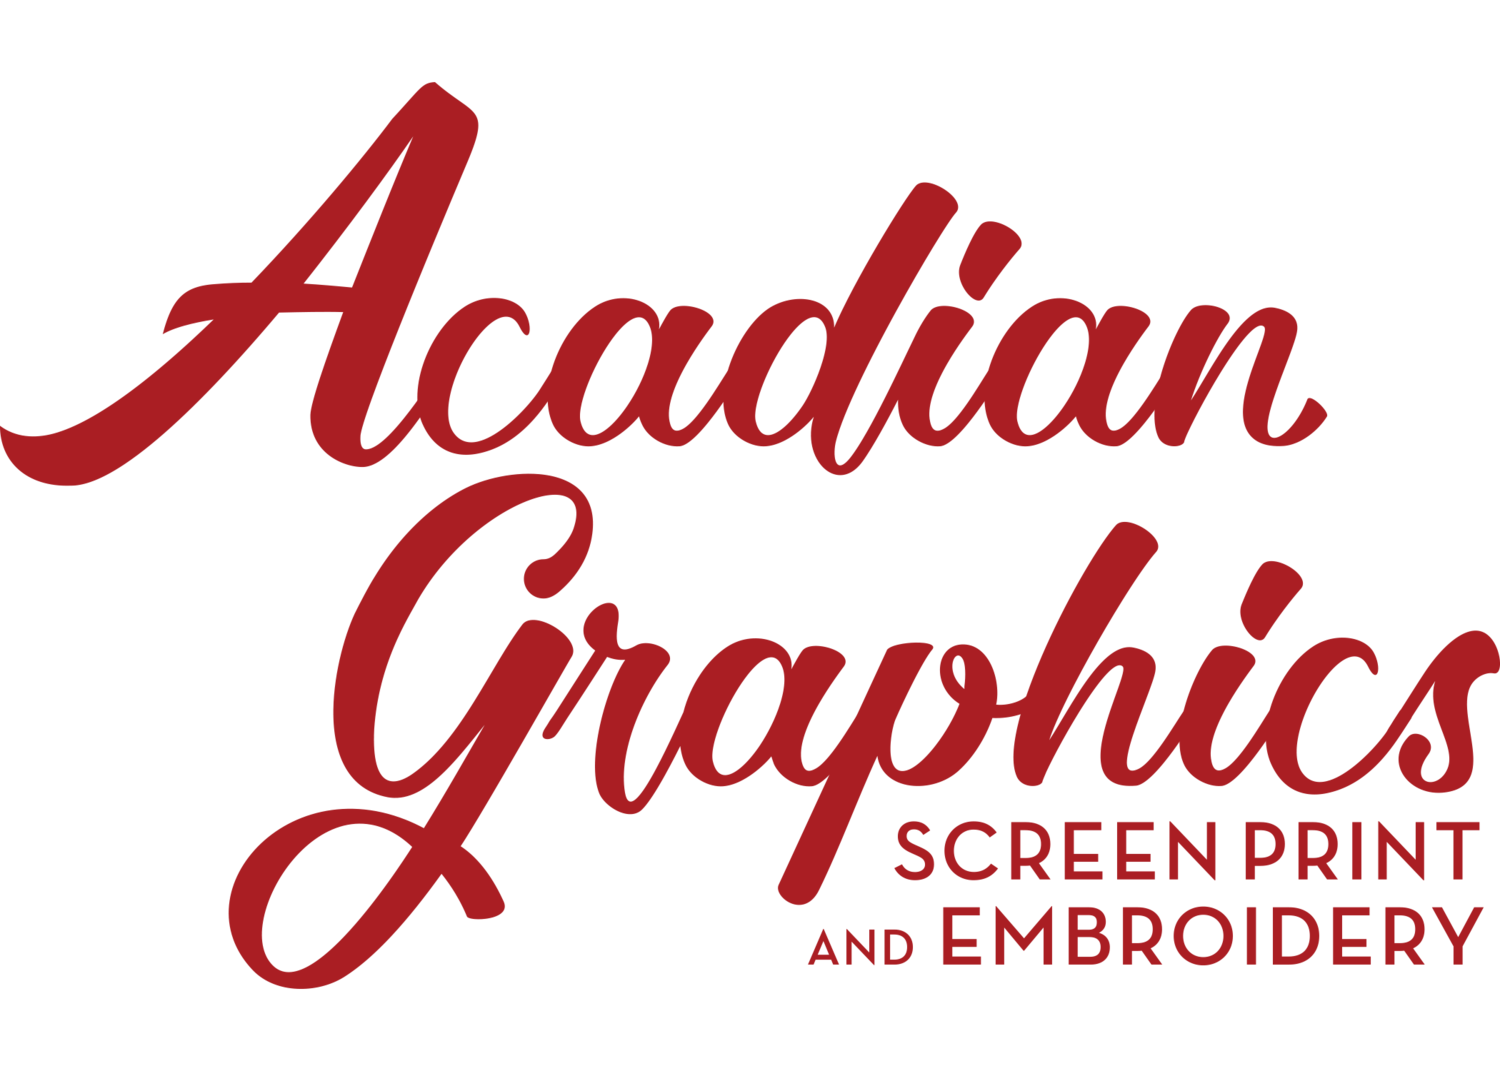 Acadian Graphics: Screen Print & Embroidery